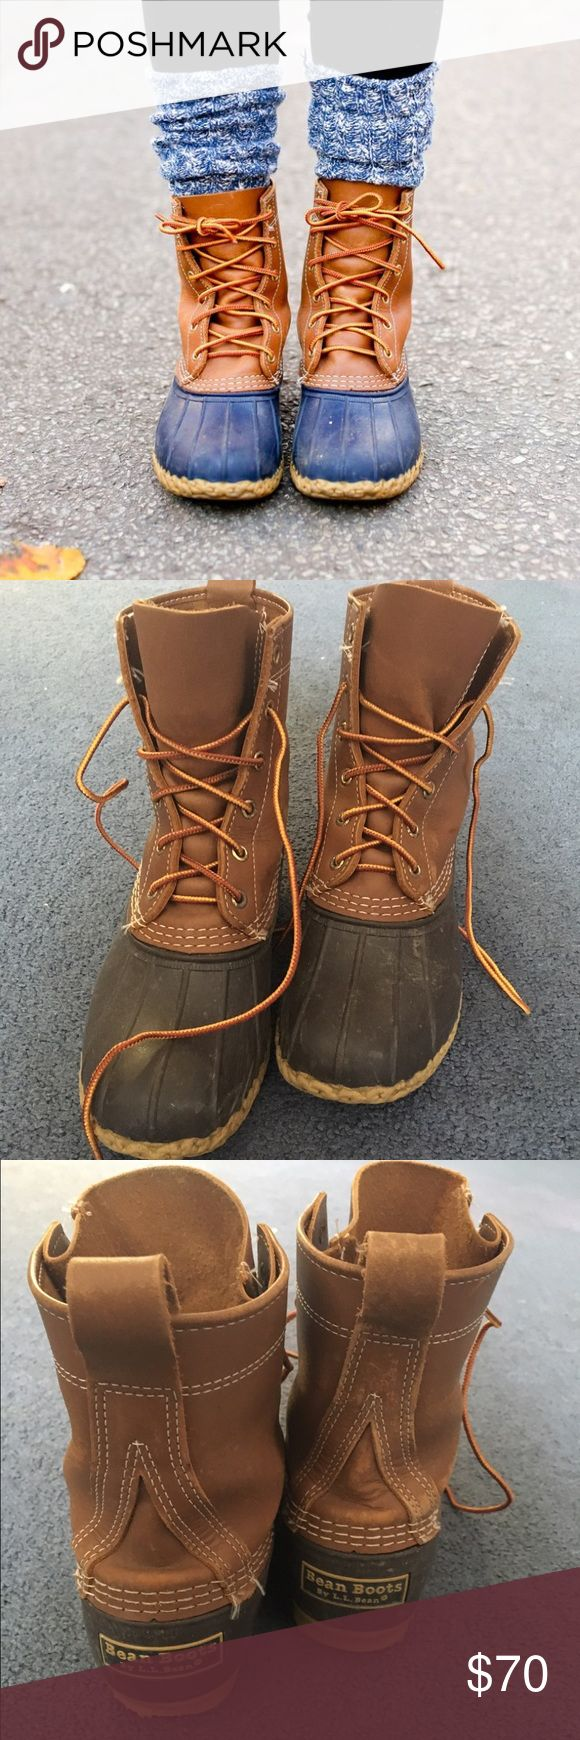 LL Bean Boots LL Bean Duck Boots! These are worn but they are still in excellent condition! Only slight discoloration in leather on side of right boot. Will be cleaned before shipping L.L. Bean Shoes Winter & Rain Boots